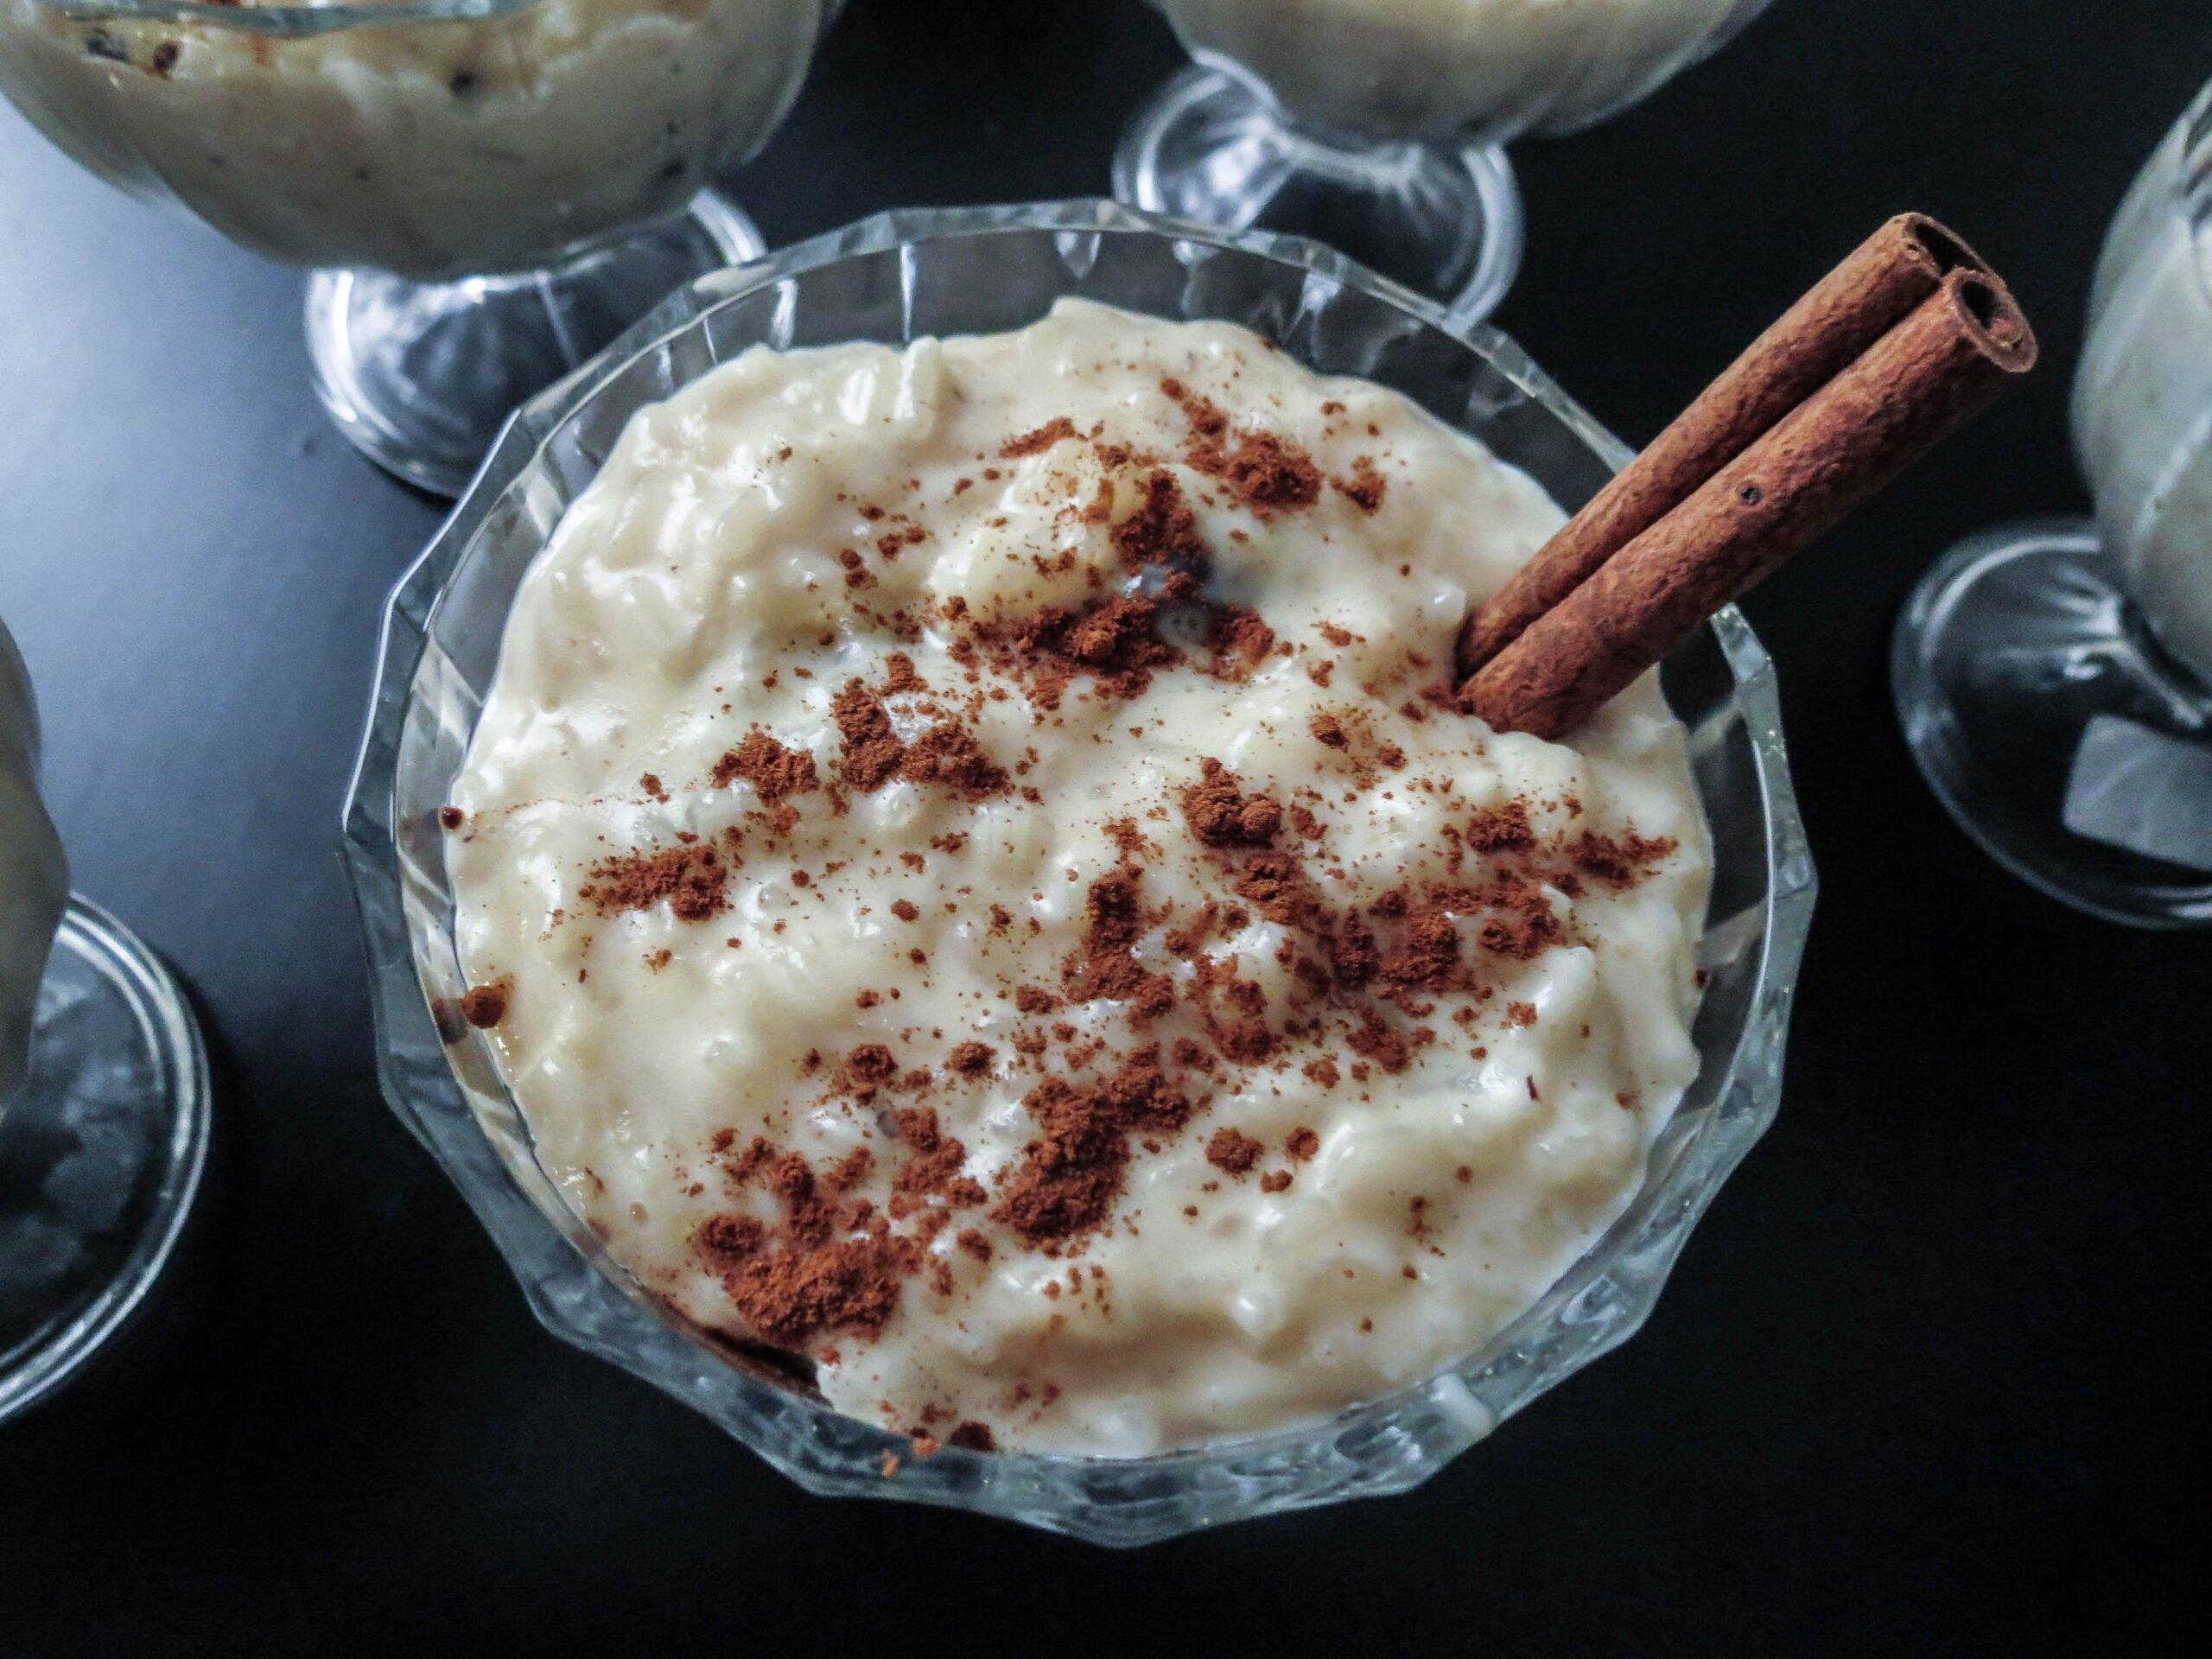 Costa rican arroz con leche rice pudding olivias cuisine hi everyone happy last week of world cup games i still have 6 more countries to feature but whos counting right lol france and colombia were forumfinder Image collections